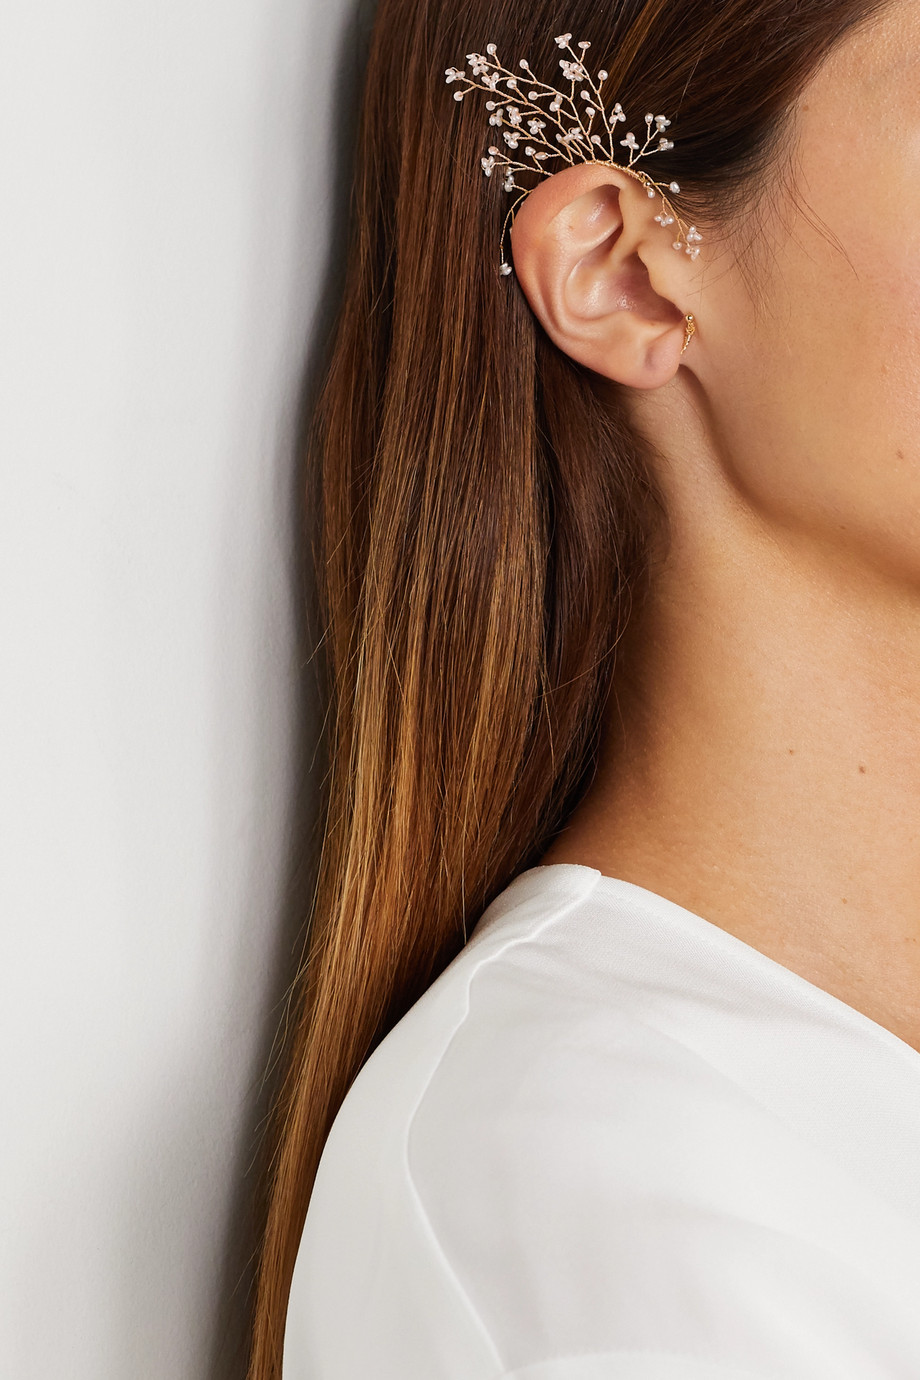 14 / Quatorze Baby's Breath gold-plated pearl ear cuff